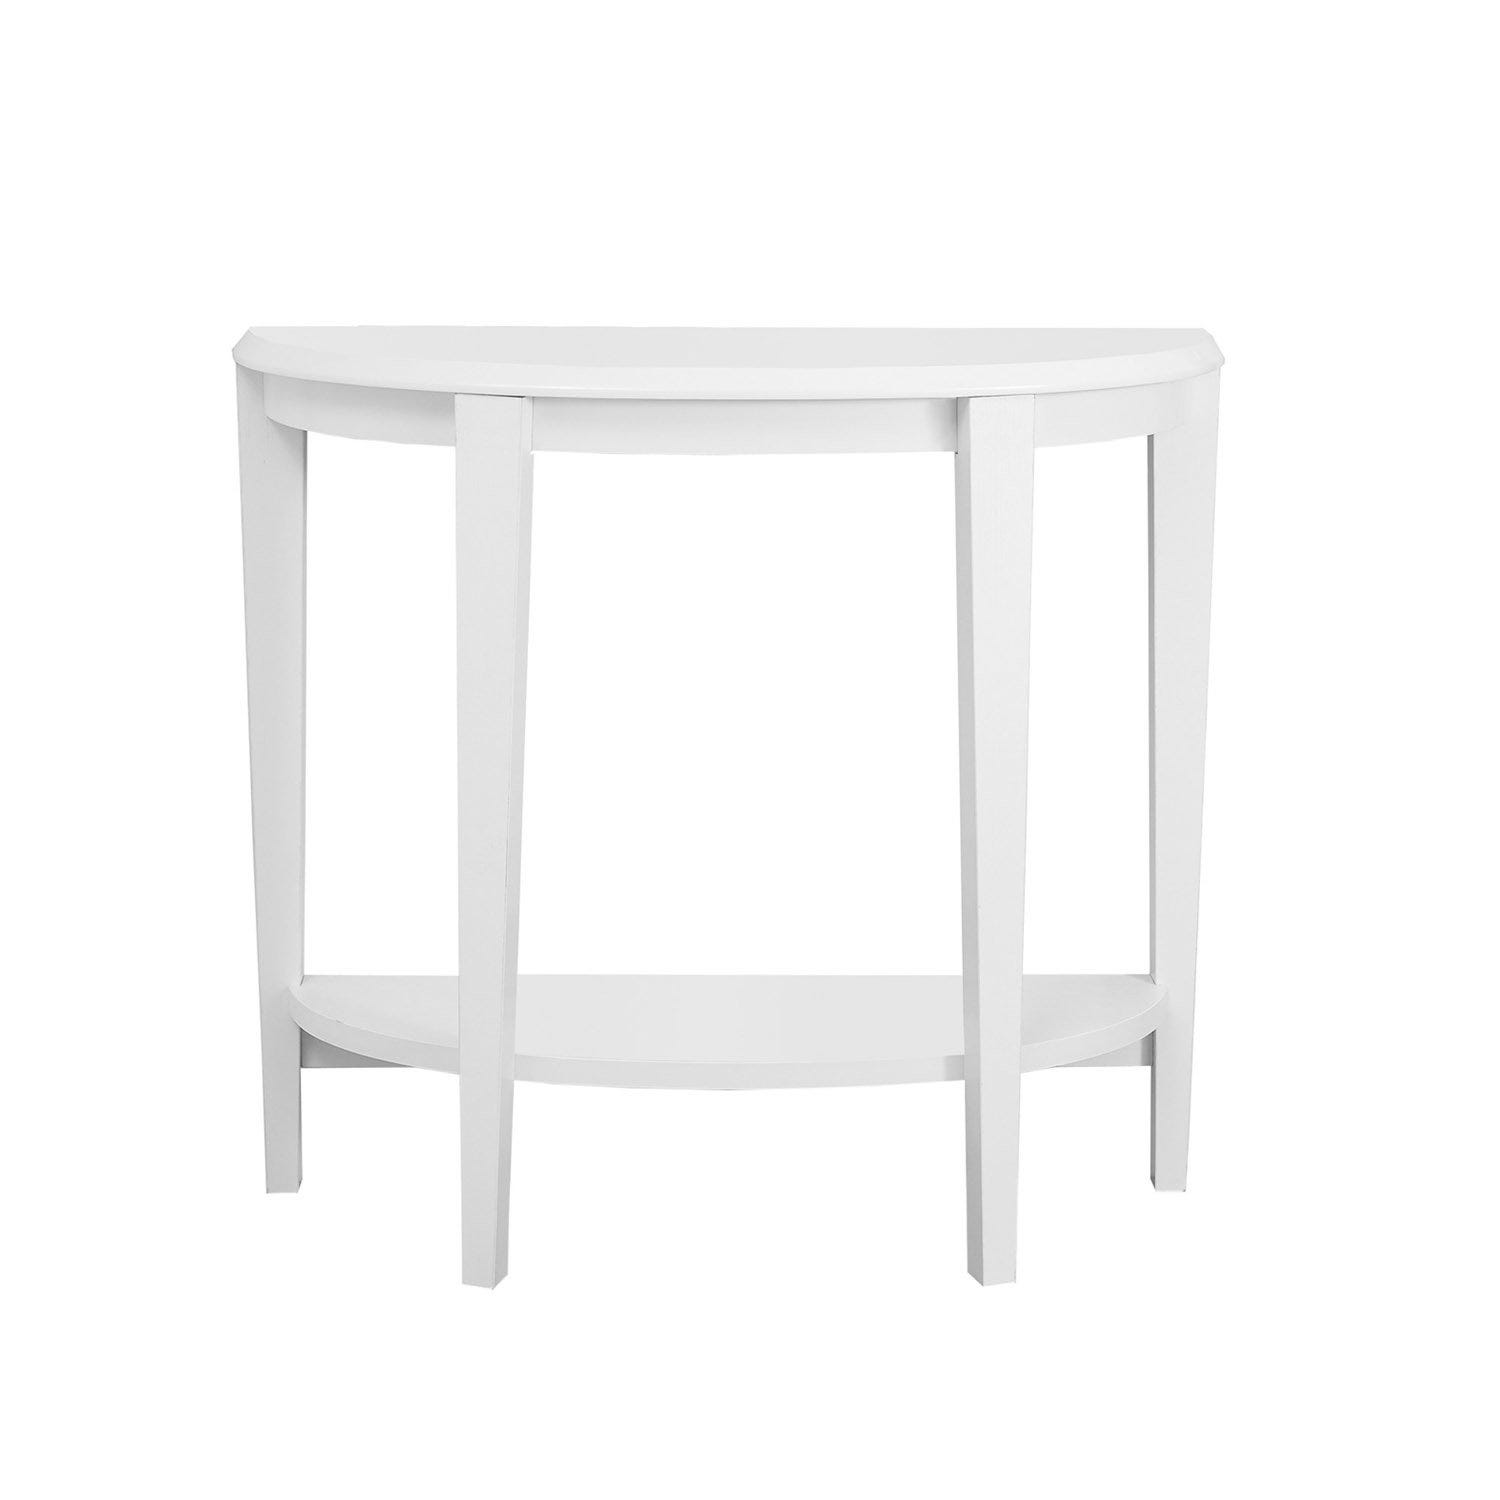 - ACCENT TABLE - 36